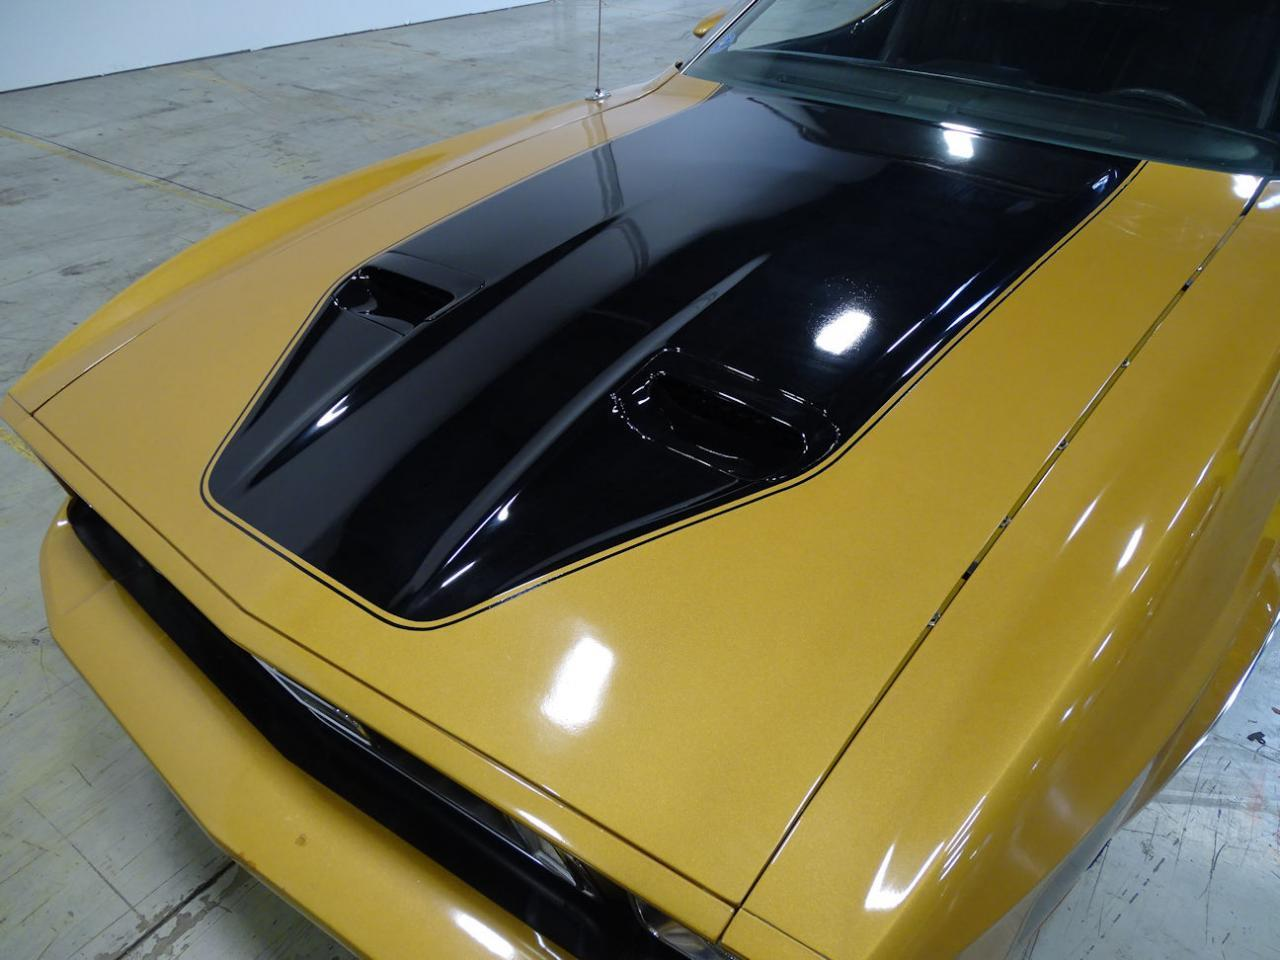 Large Picture of 1973 Mustang located in West Deptford New Jersey - $23,595.00 - MZO0